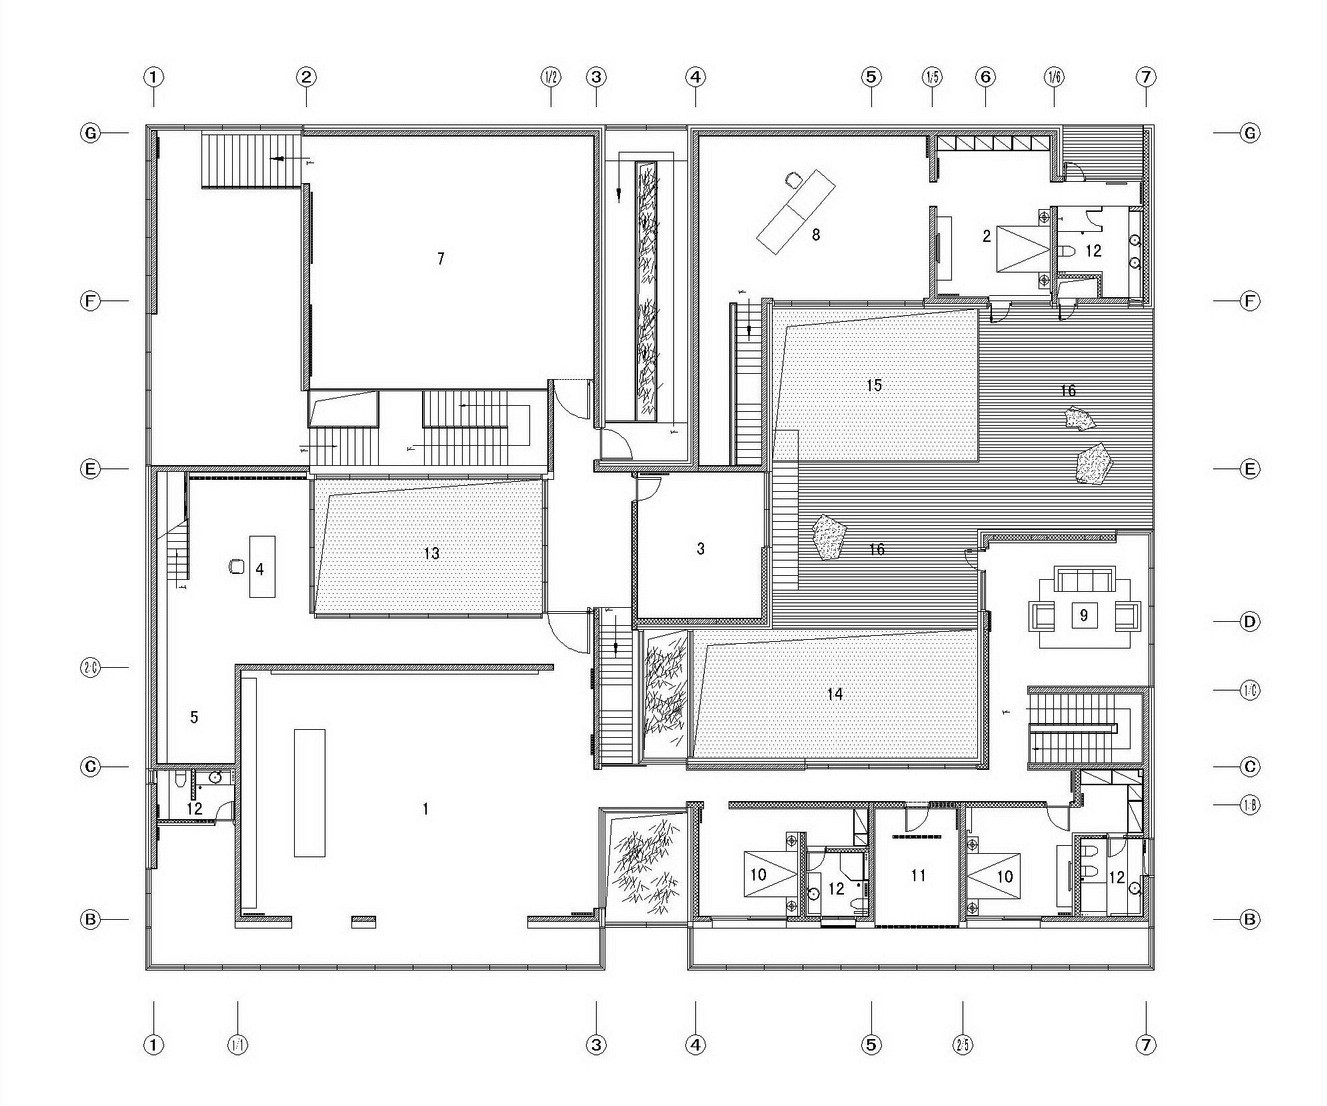 Architecture Design House Plans Gallery Of The Concave House Tao Lei Architect Studio 22